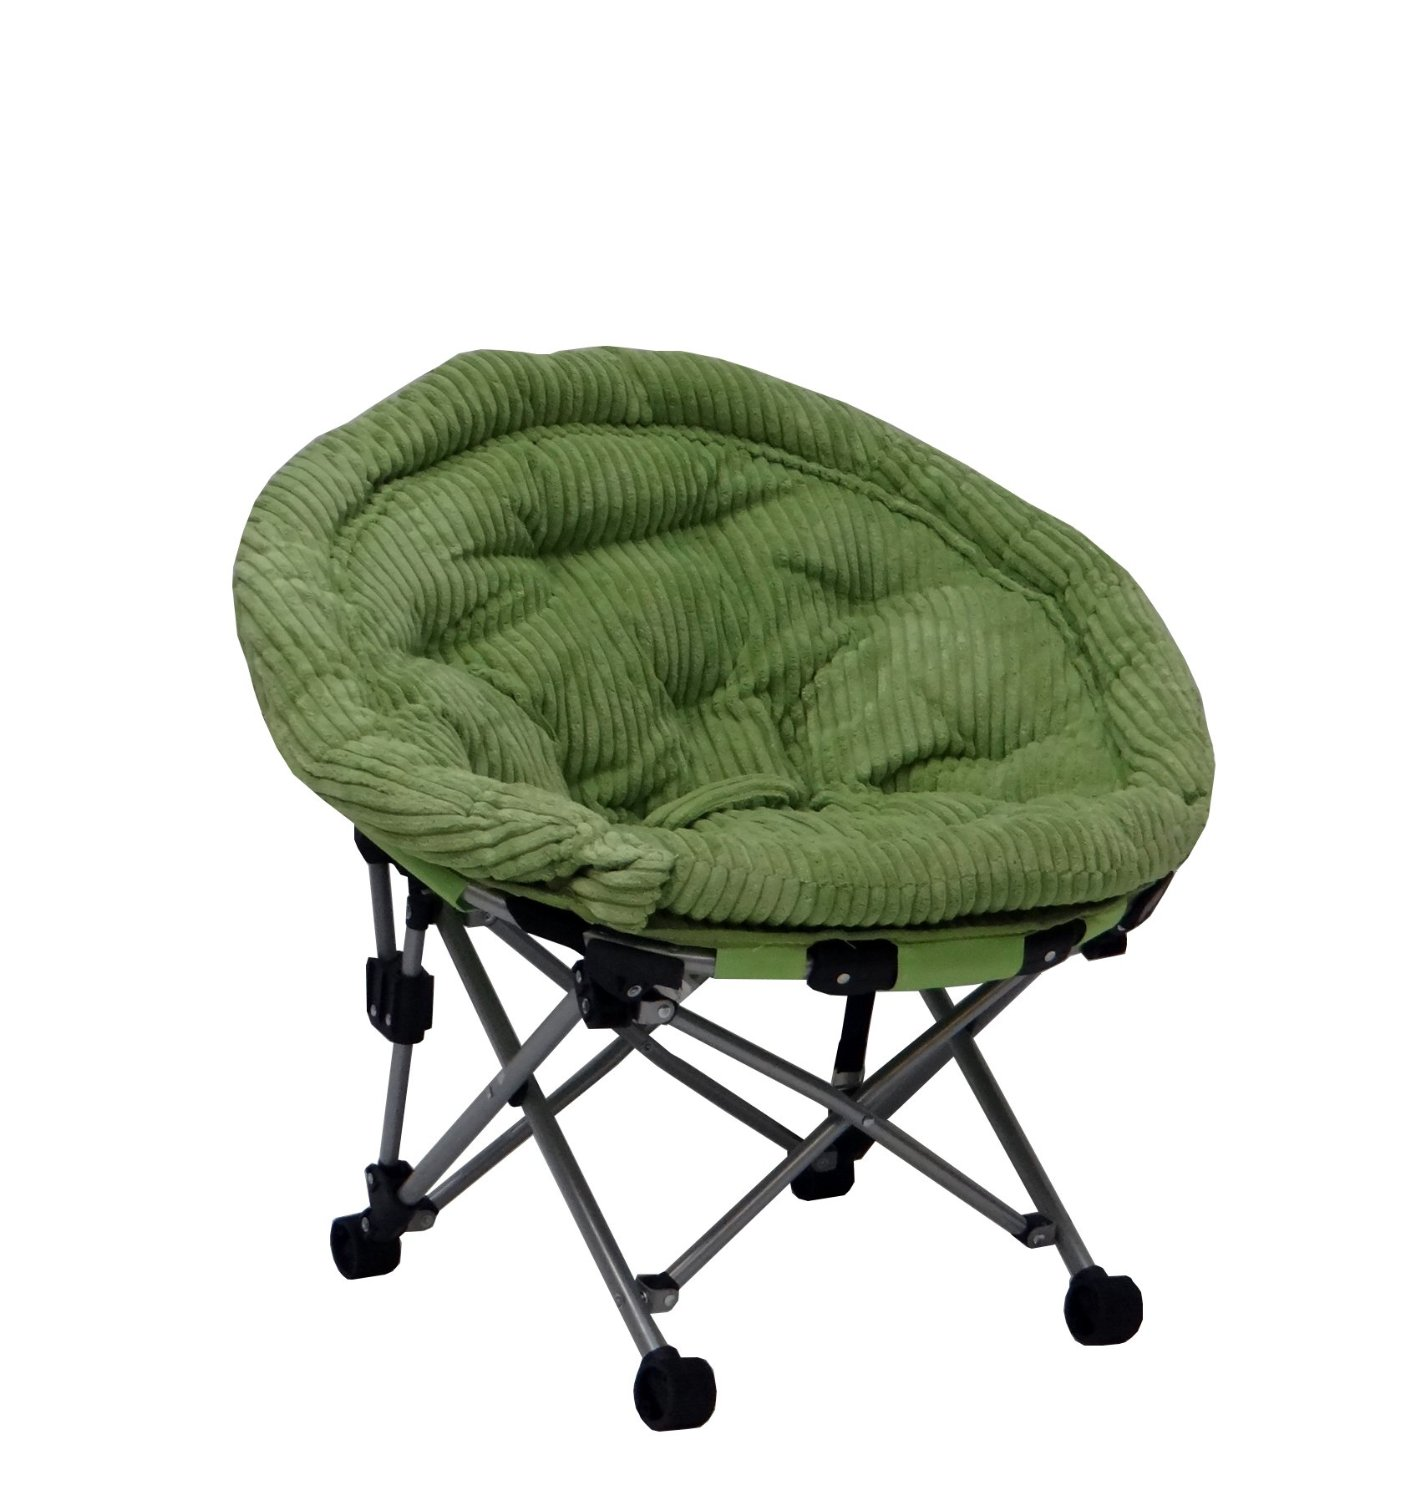 Papisan Chair Mini Papasan Chair Home Furniture Design